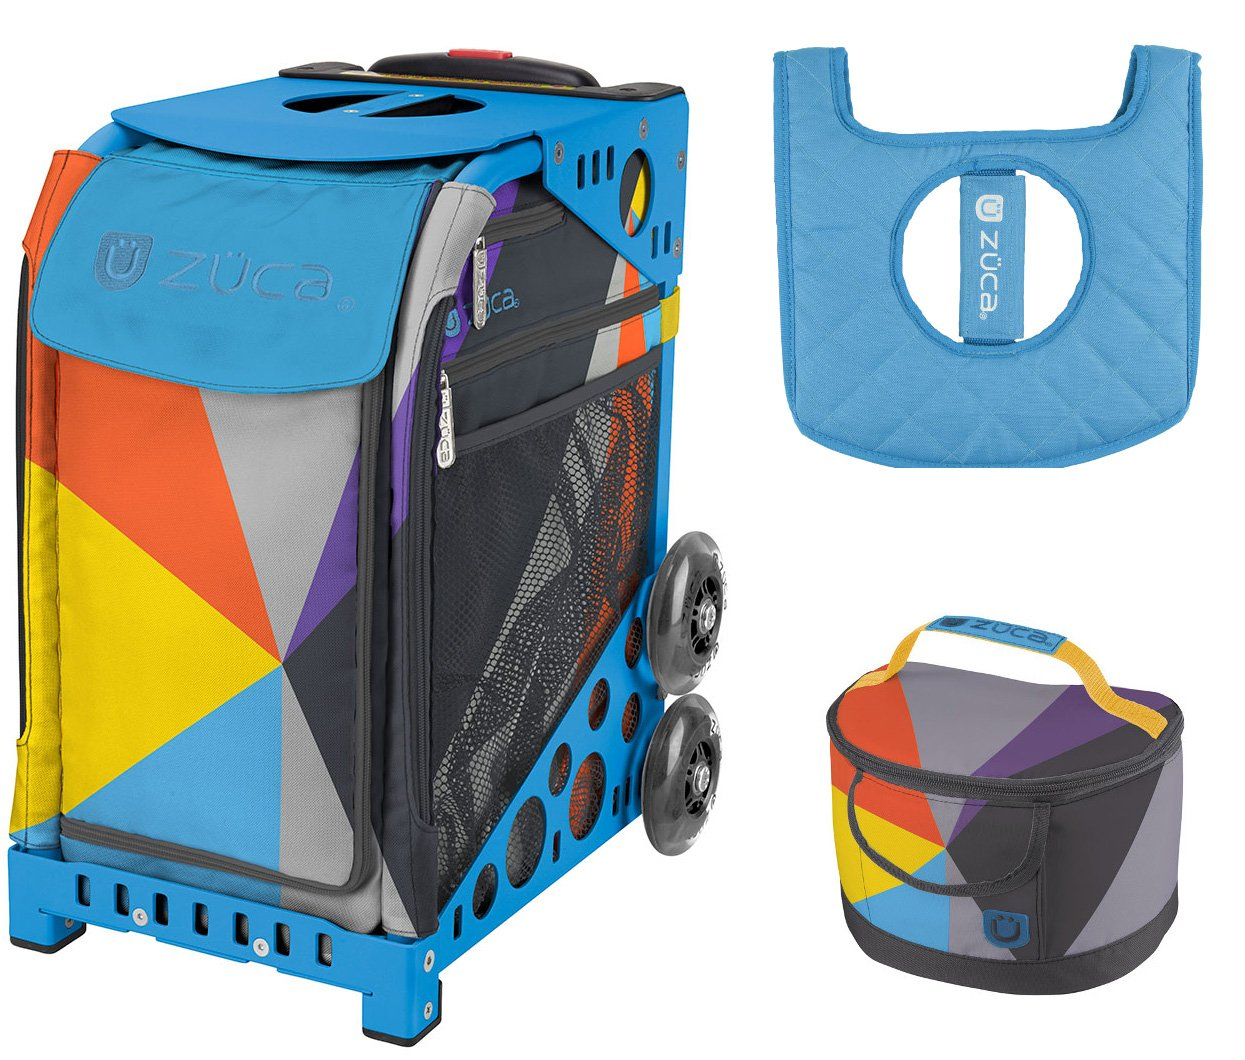 Zuca Sport Bag - Colorblock Party with Gift Lunchbox and Seat Cover (Blue Frame) by ZUCA